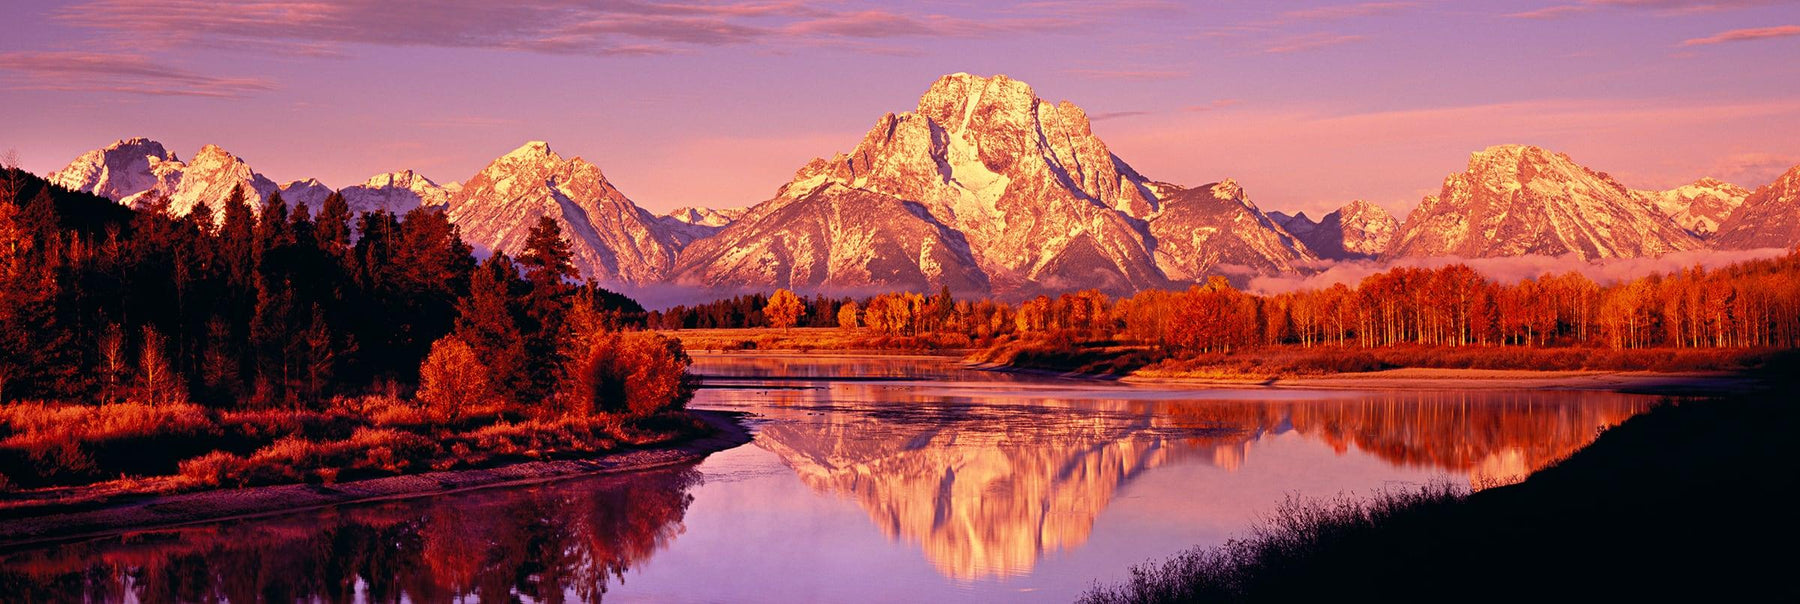 Autumn colored forest reflecting into the Snake River with the Grand Teton Mountains in the background at sunrise